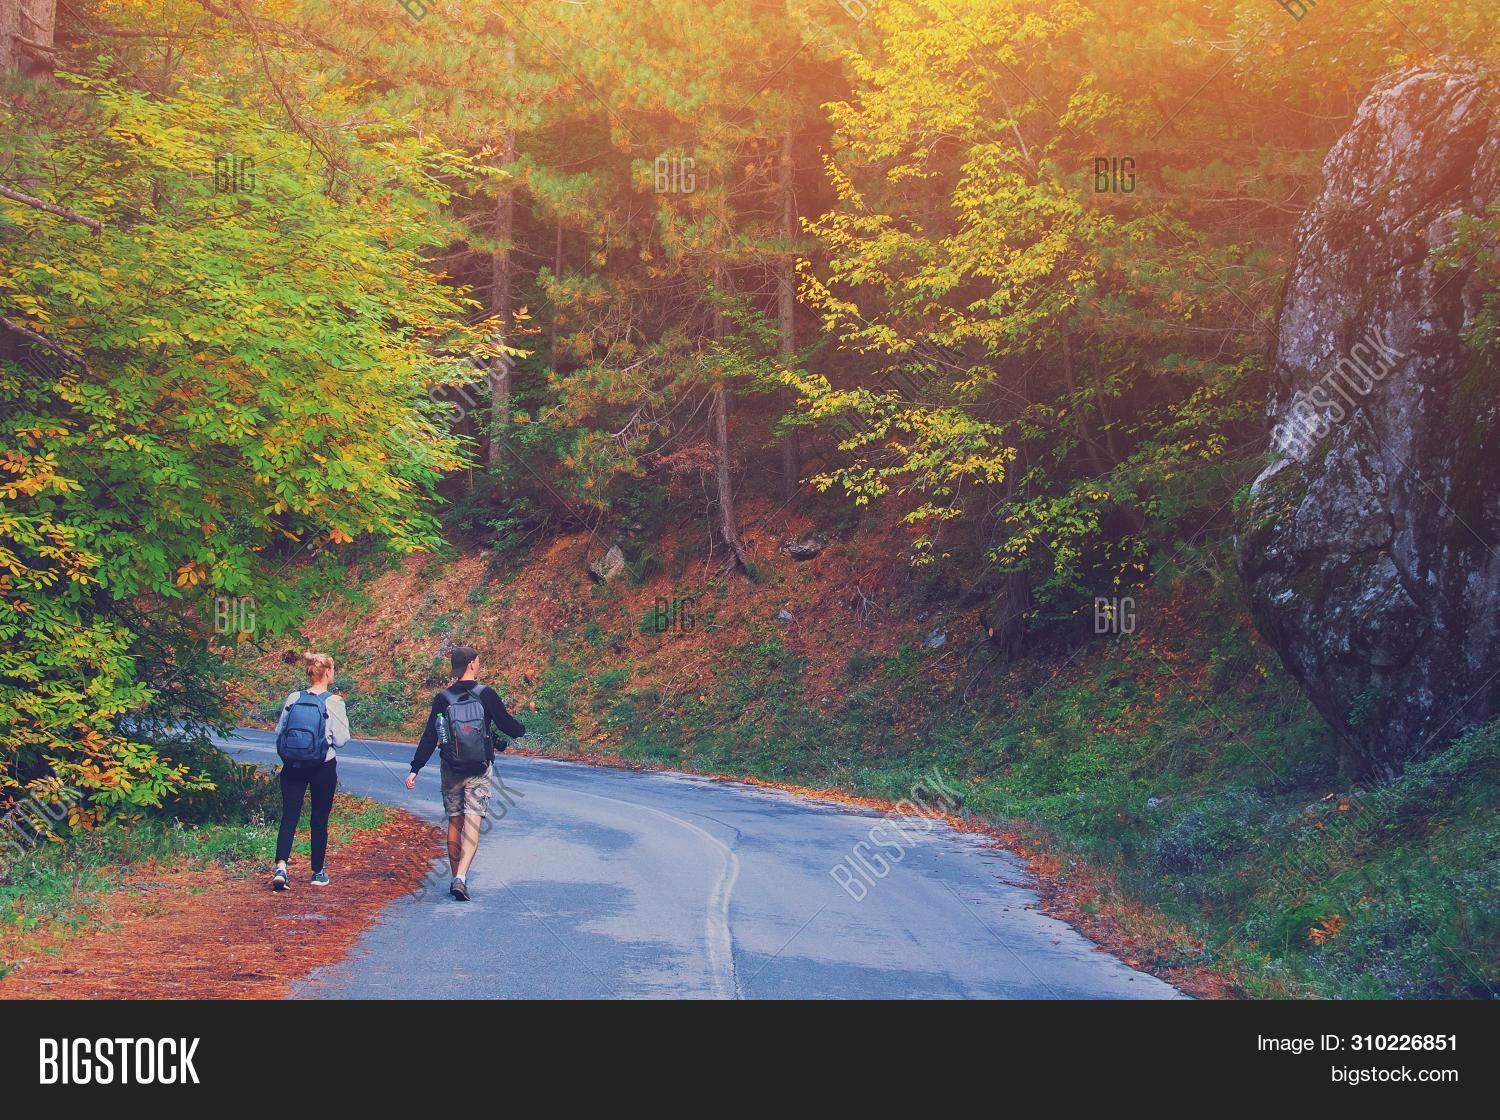 active,adult,adventure,autumn,back,backpack,candid,countryside,couple,europe,fall,family,forest,friends,friendship,gear,girl,great,happy,healthy,hike,hiker,hiking,holiday,landscape,leisure,lifestyle,male,man,map,mountain,nature,nordic,norway,orienteering,outdoor,pack,people,person,smile,summer,trail,travel,trekking,vacation,walk,walking,woman,woods,young